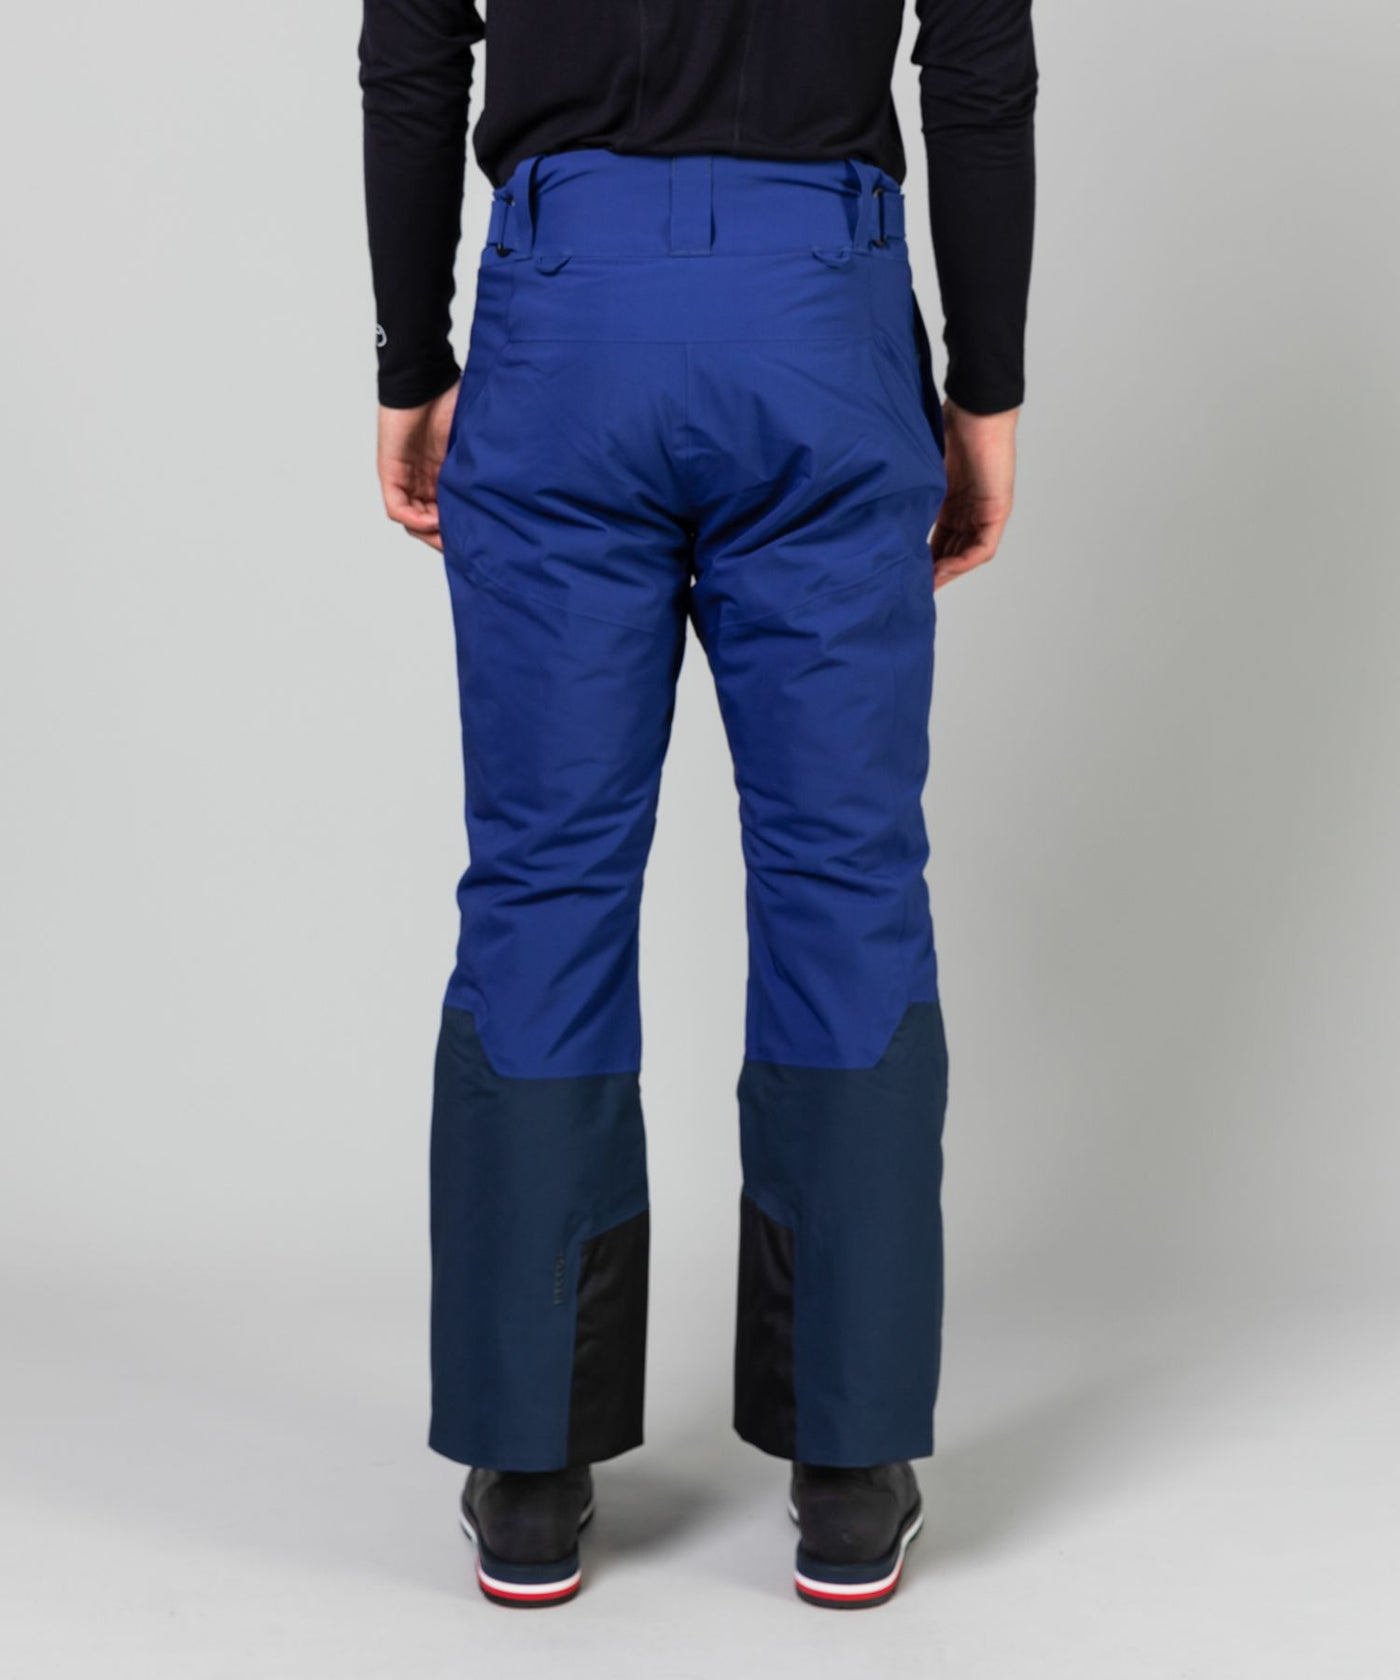 Men's Rider Ski Pants - Snowsport